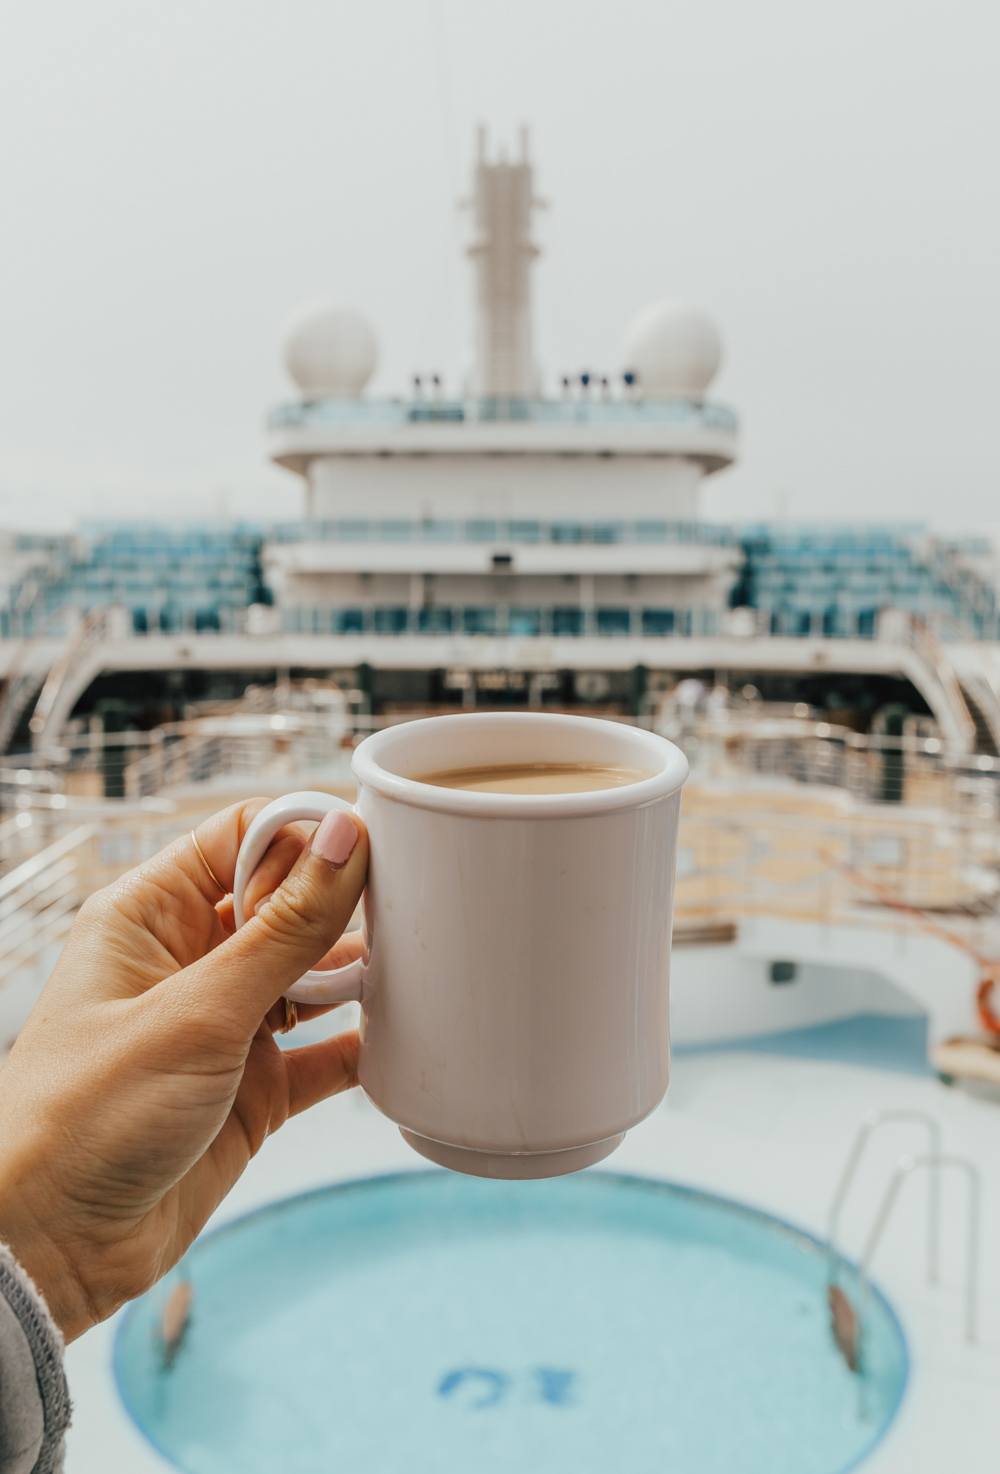 livvyland-blog-olivia-watson-travel-fashion-blogger-princess-cruises-regal-ship-what-to-do-on-board-cruise-boat-coffee-balcony